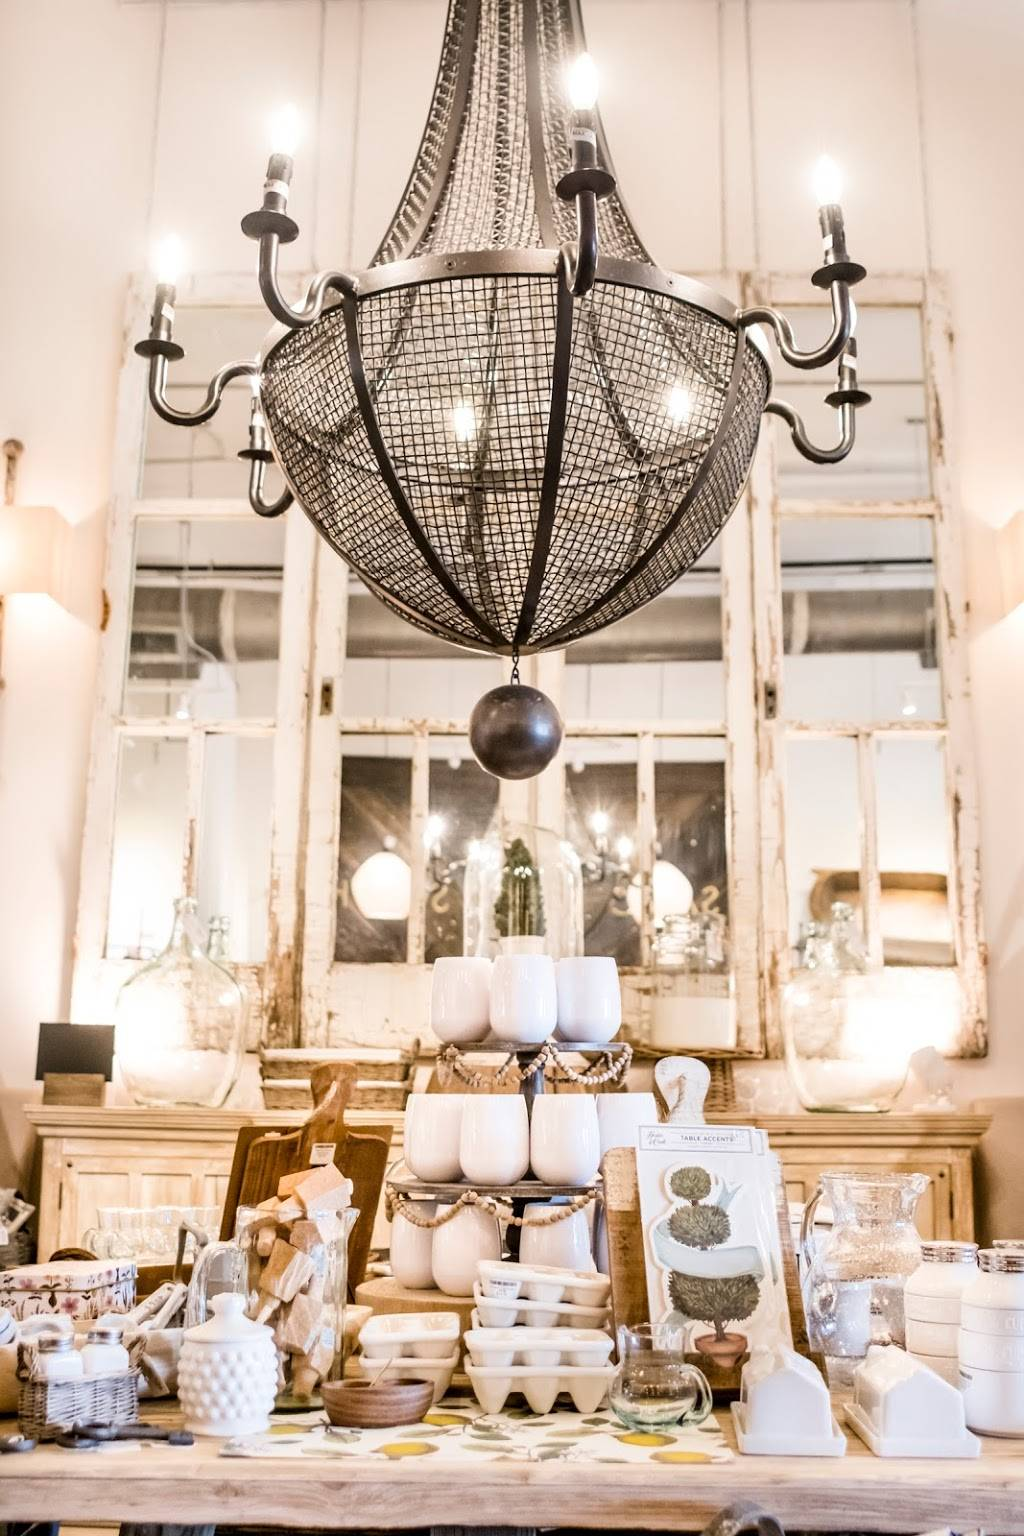 Sanctuary South - home goods store  | Photo 1 of 10 | Address: Westhaven Town Center, 158 Front Street, Suite 104, Franklin, TN 37064, USA | Phone: (615) 435-3779